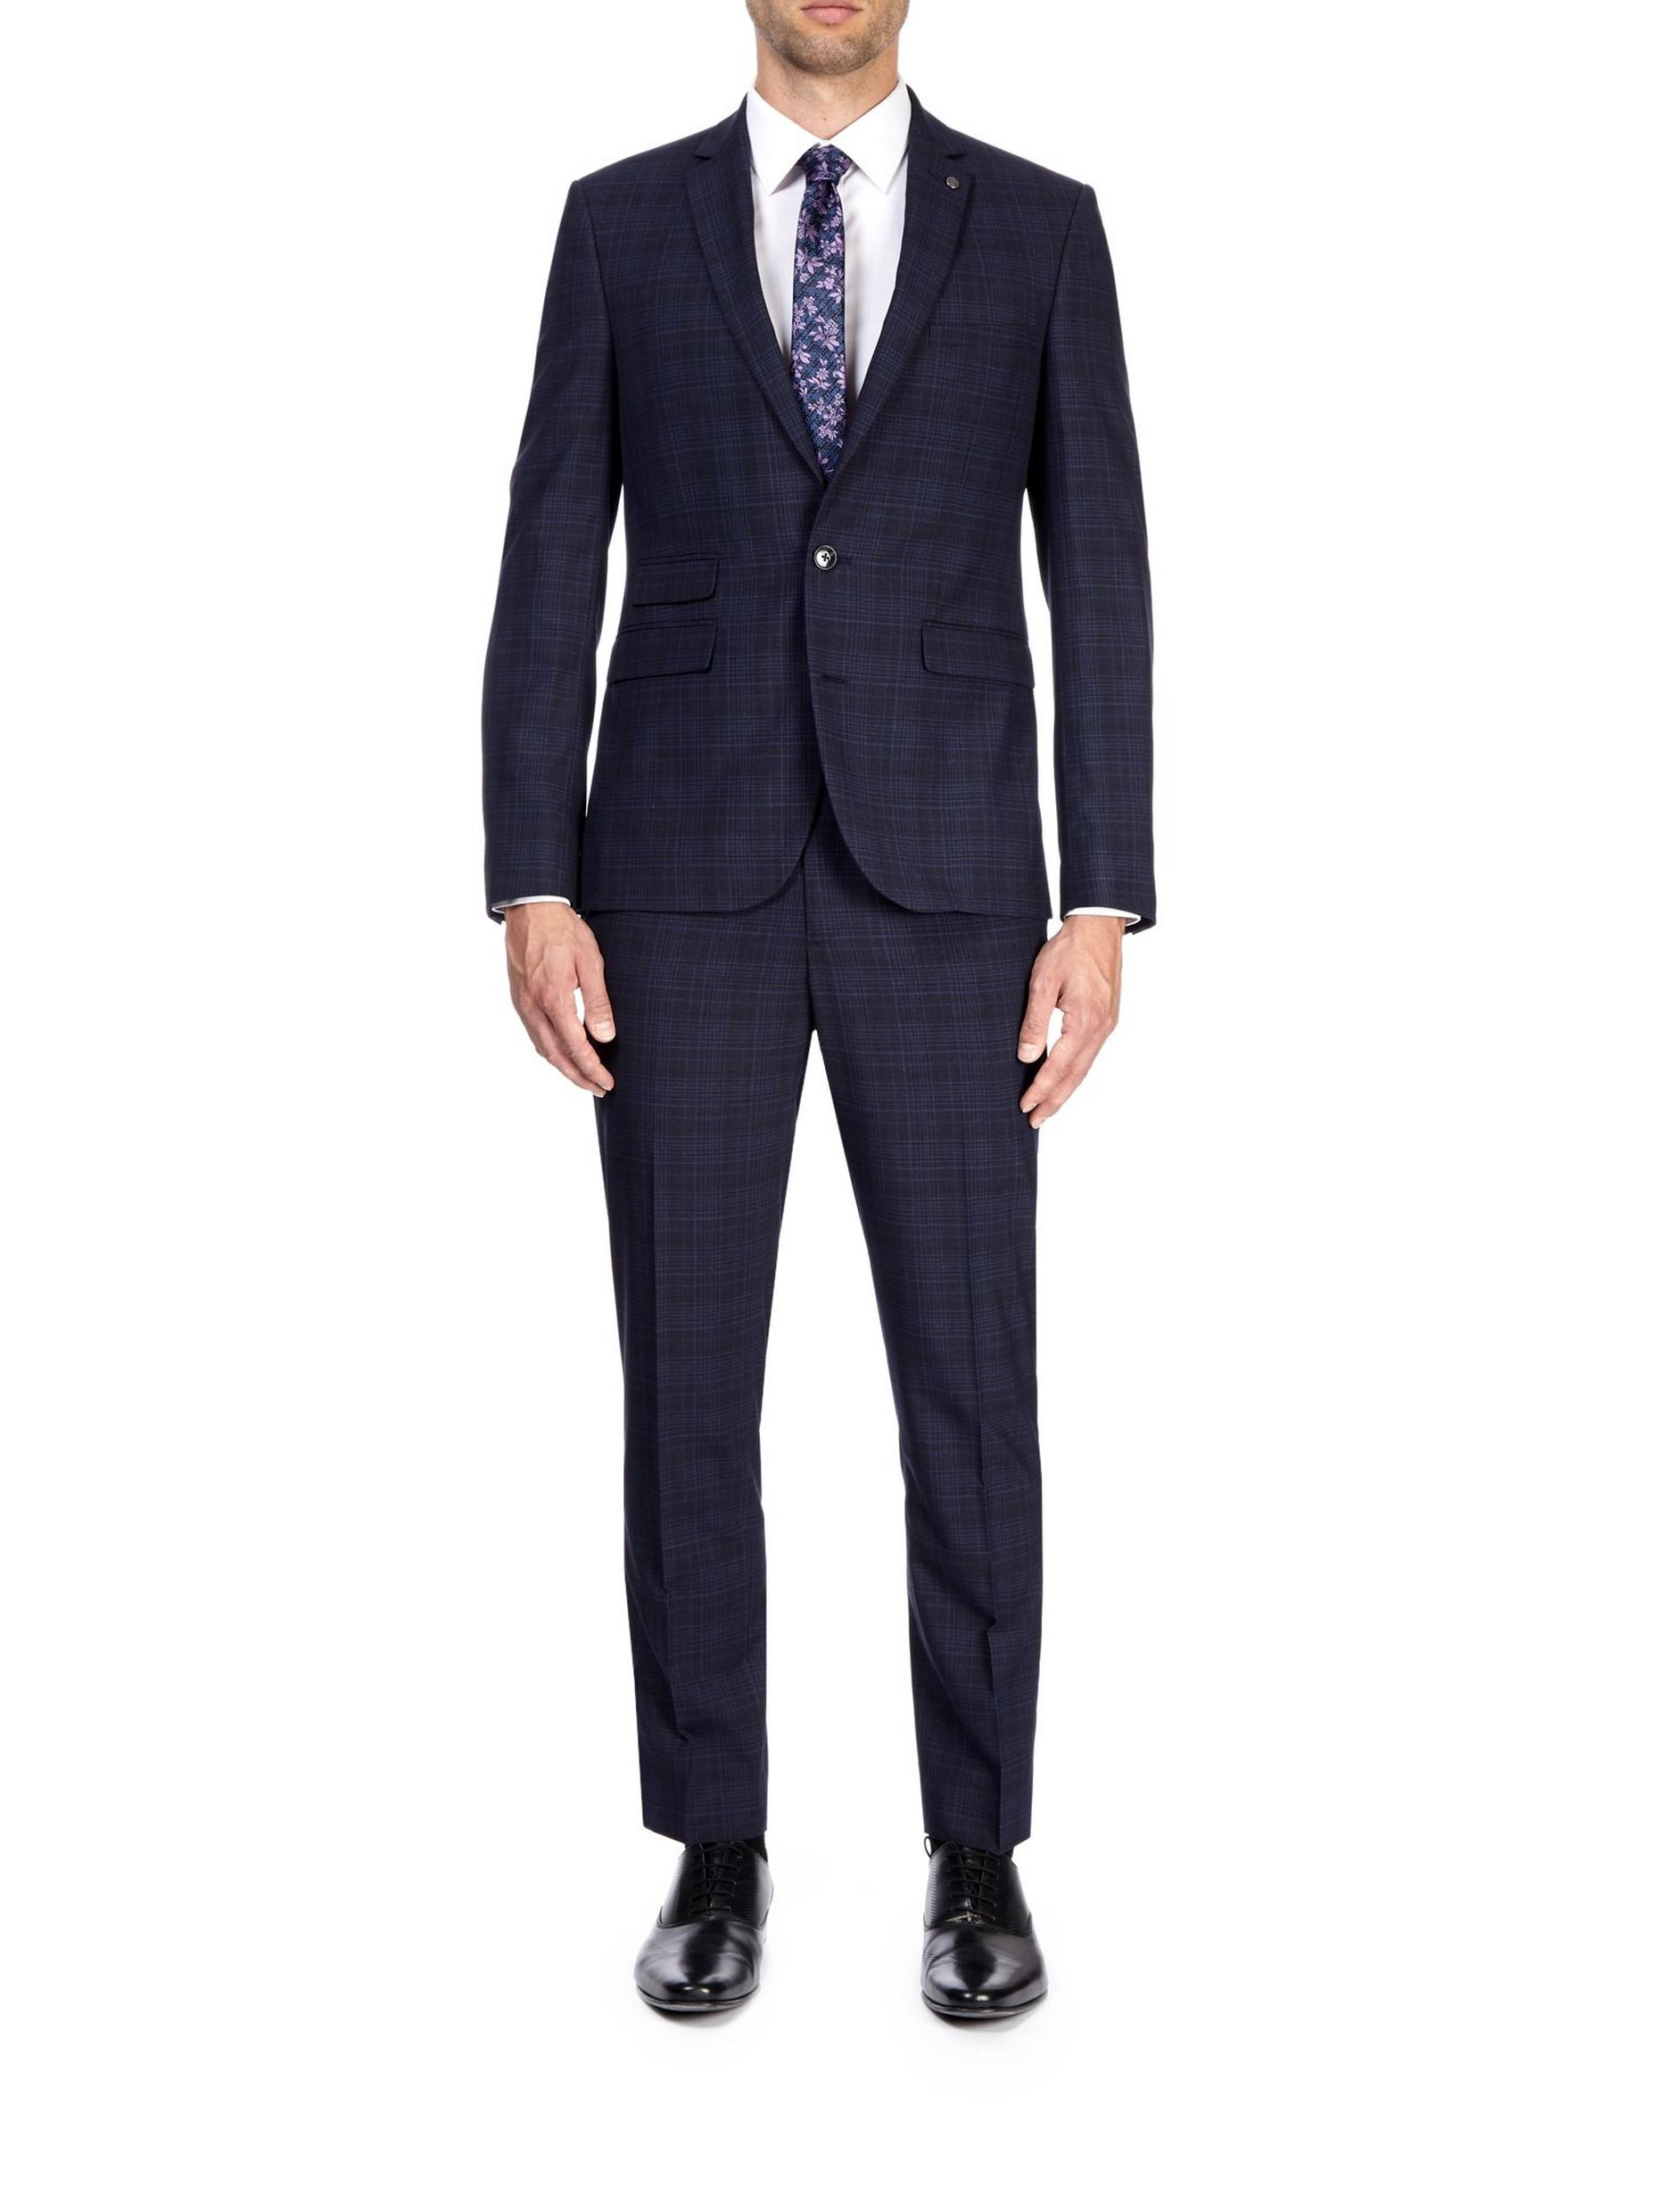 Blue and Black Slim Fit Check Suit Jacket